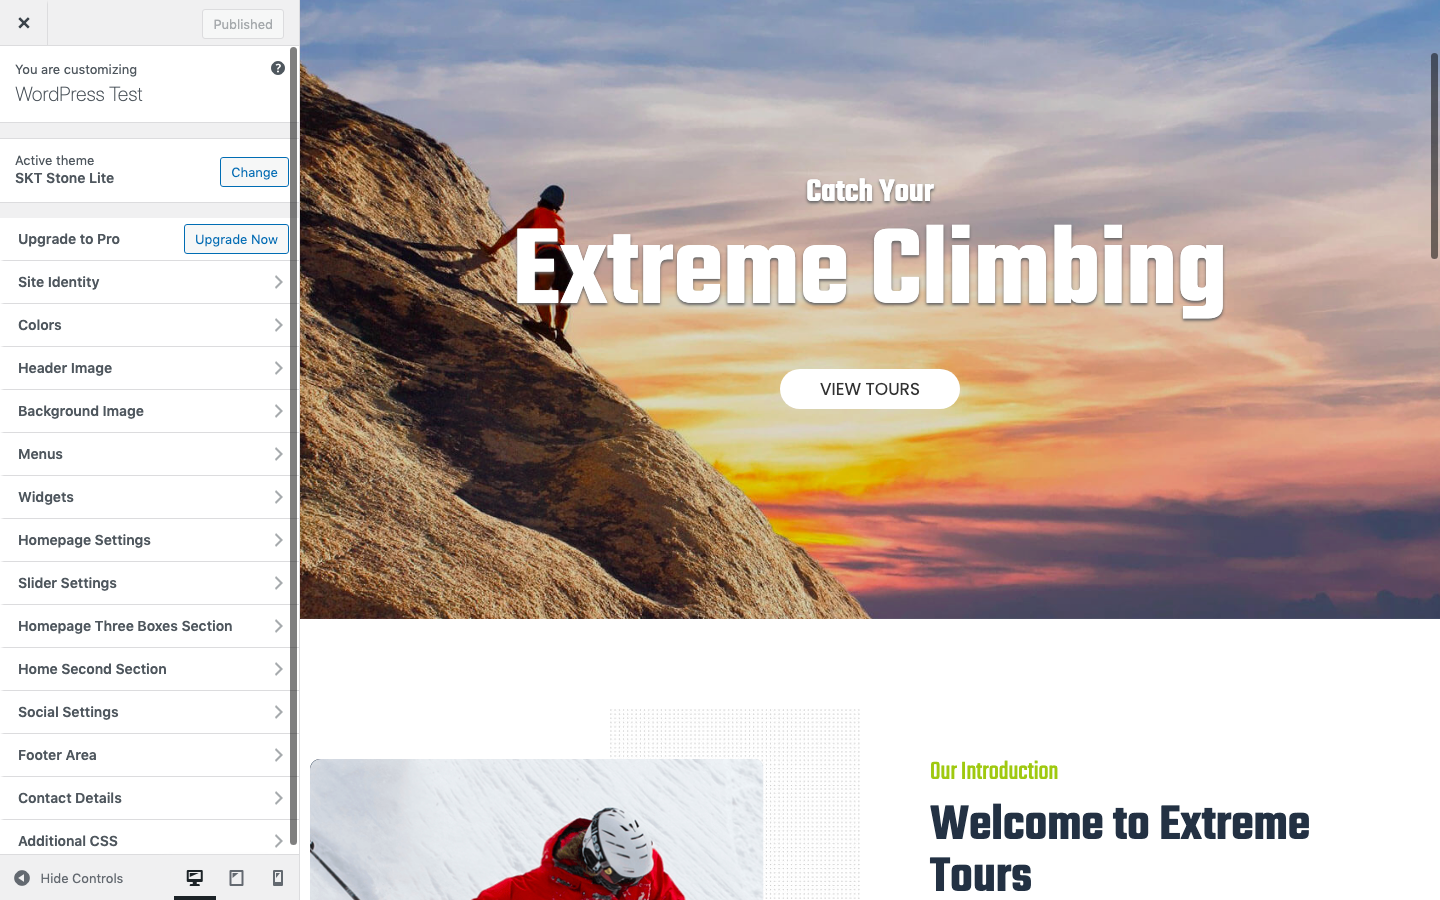 Preview in WordPress customizer